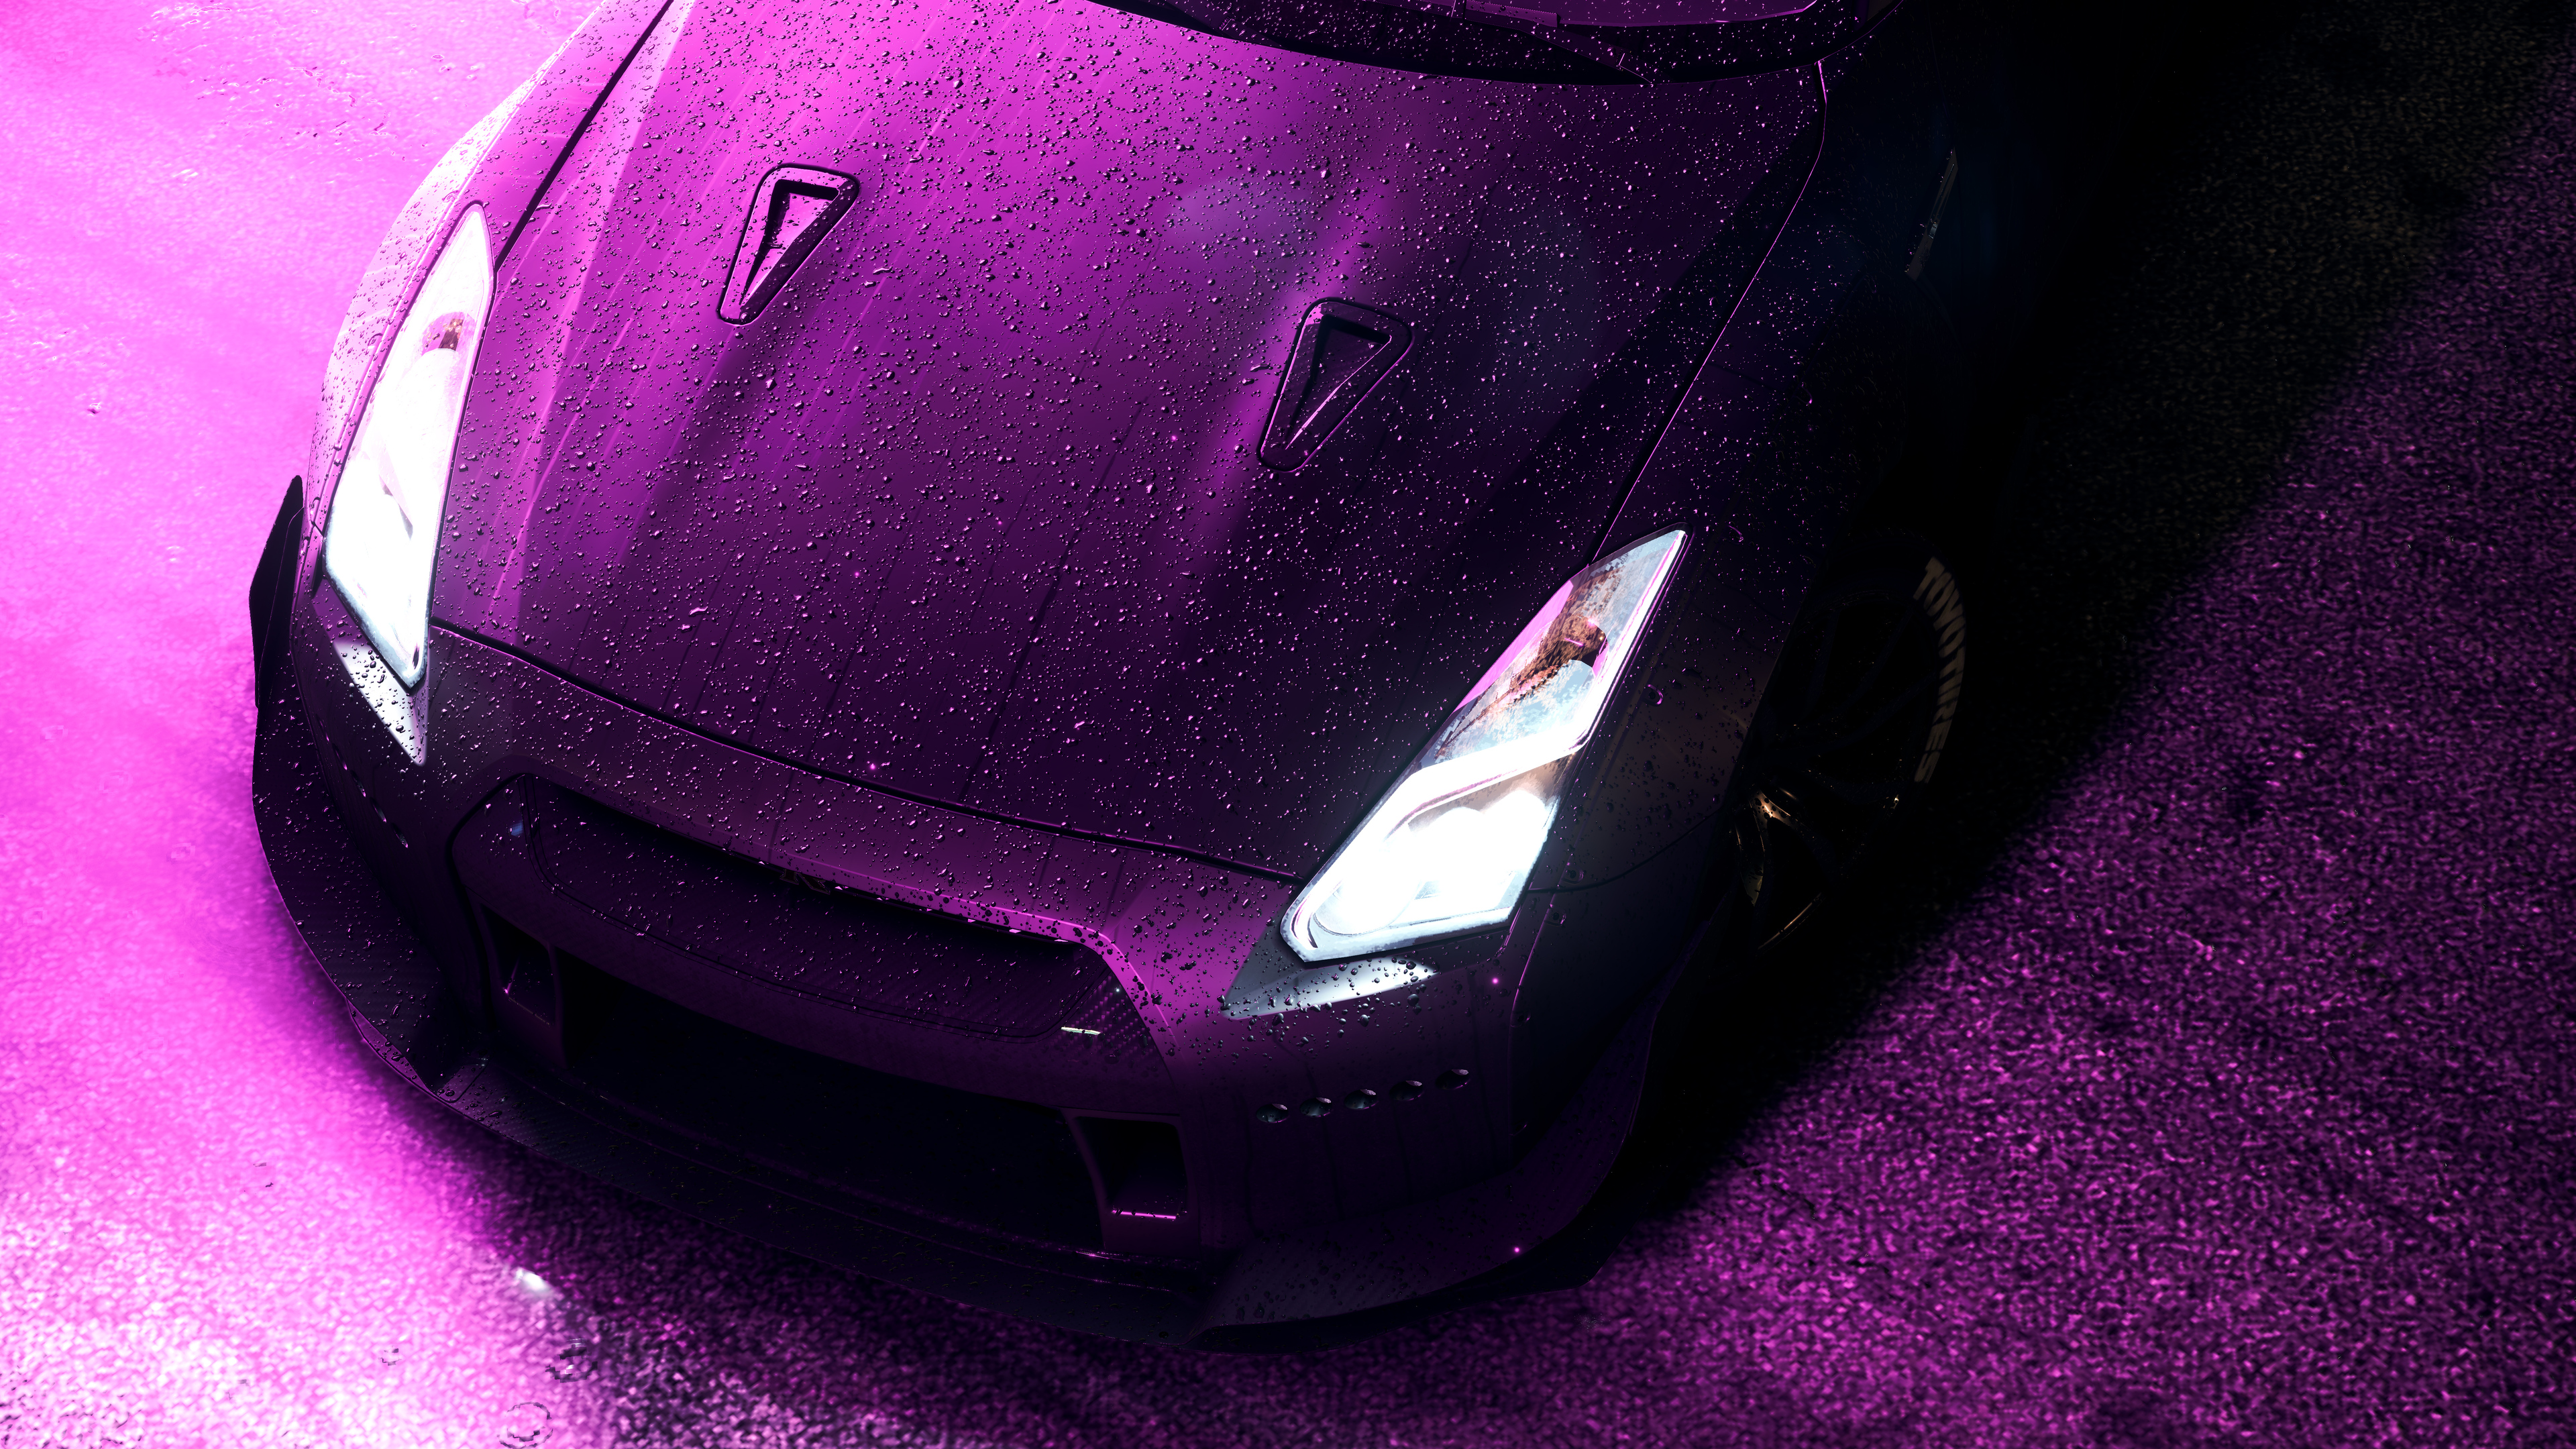 need for speed nissan gtr 1565054497 - Need For Speed Nissan Gtr - nissan wallpapers, nissan gtr wallpapers, need for speed wallpapers, hd-wallpapers, games wallpapers, 8k wallpapers, 5k wallpapers, 4k-wallpapers